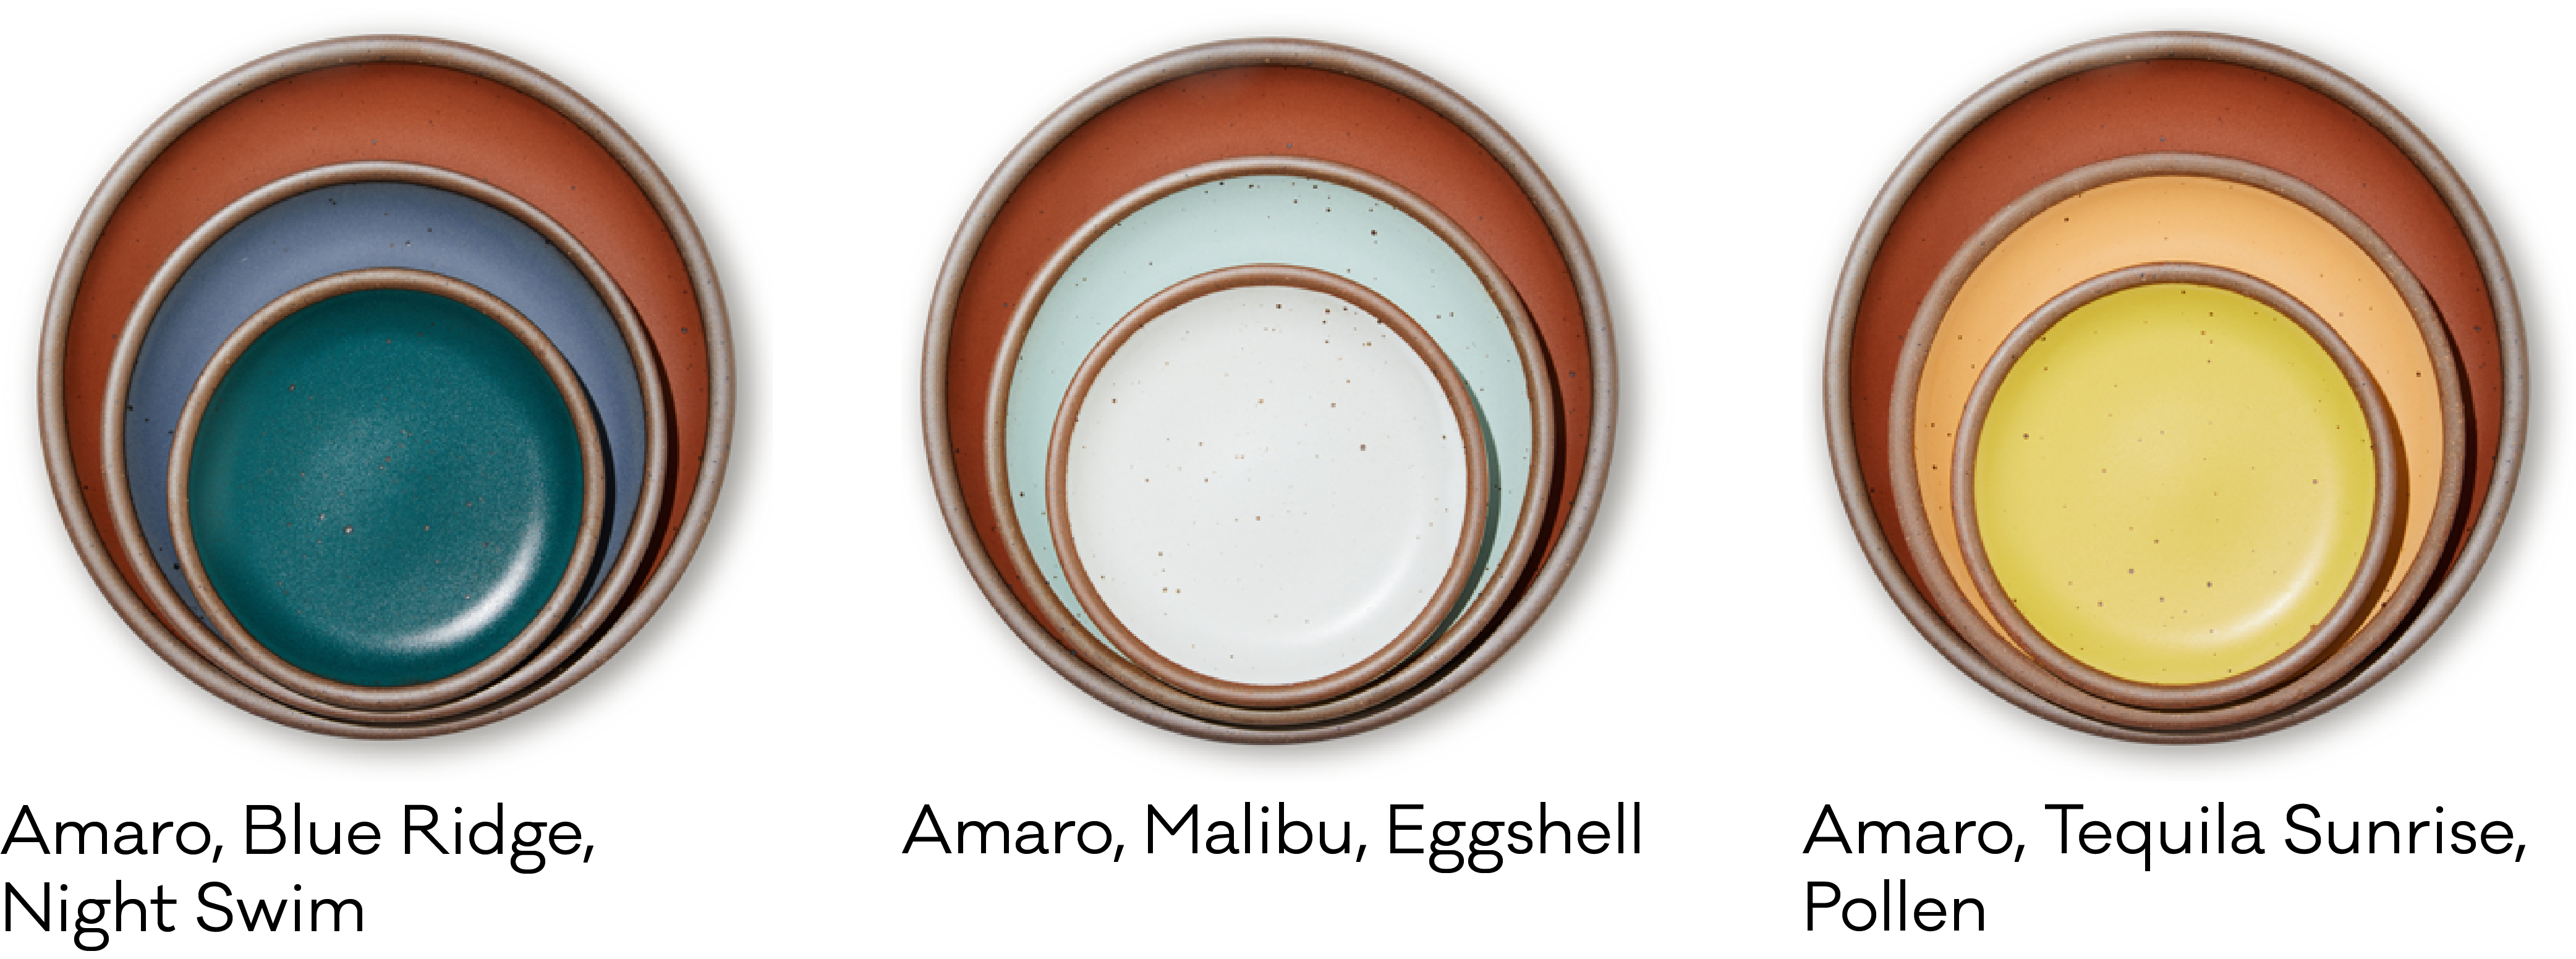 Amaro with other glazes